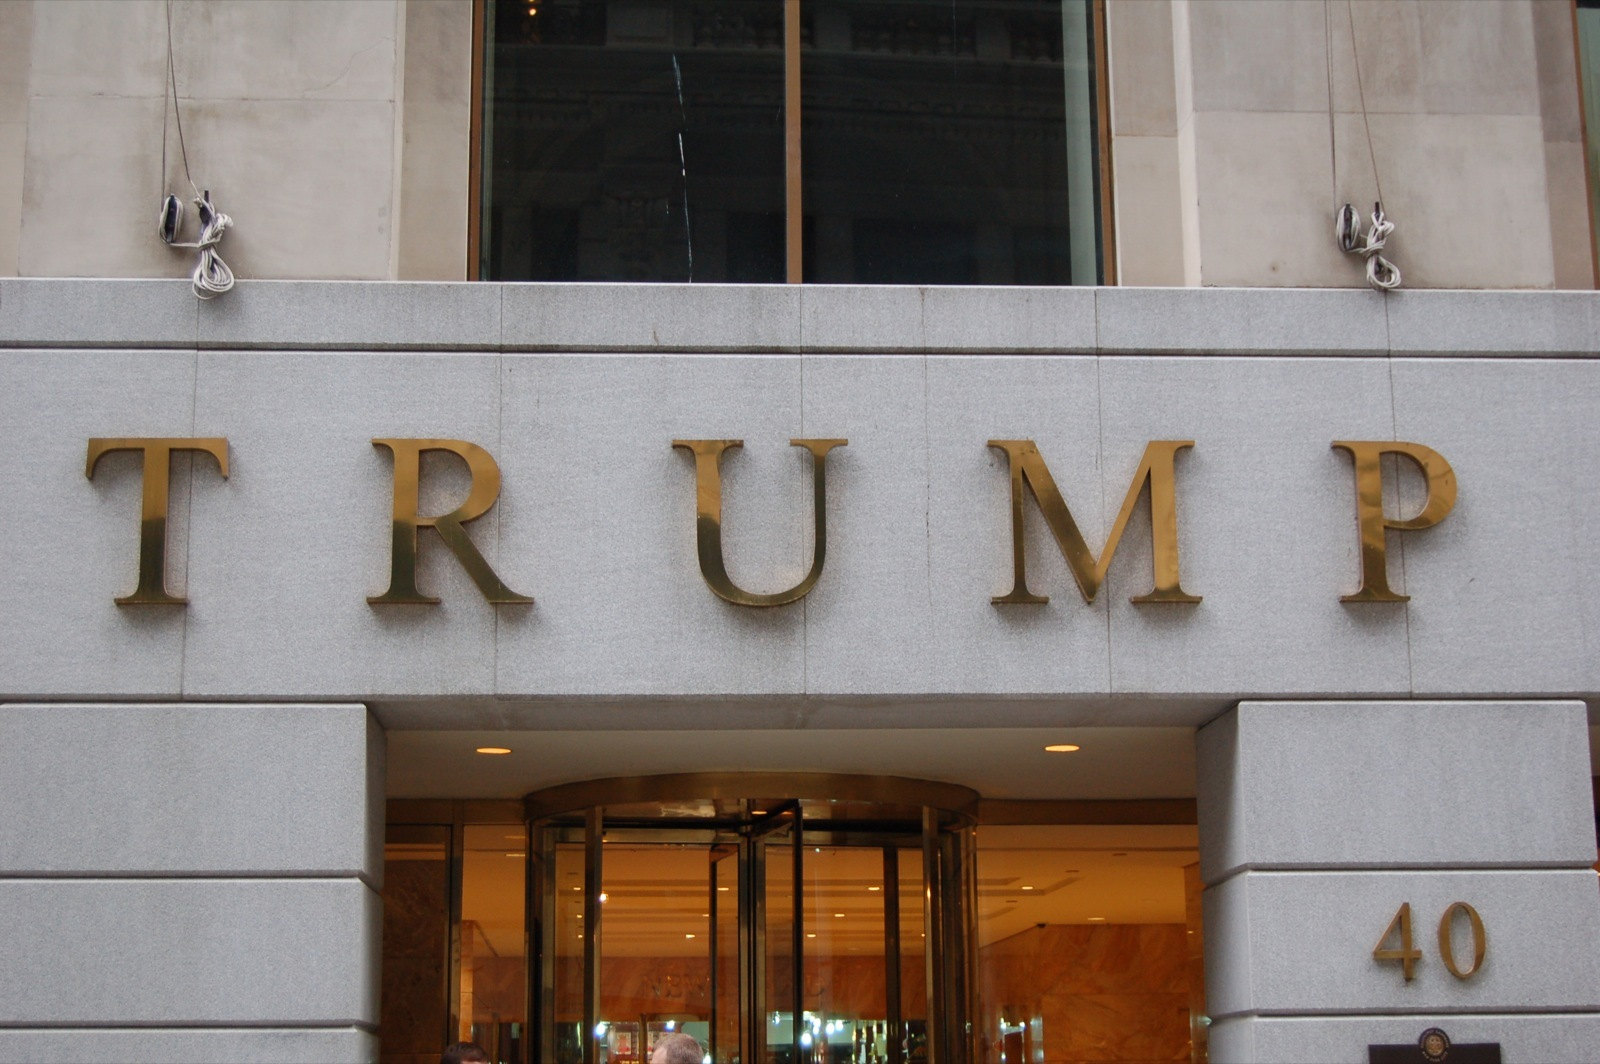 Three Upper West Side buildings are removing Trump's name